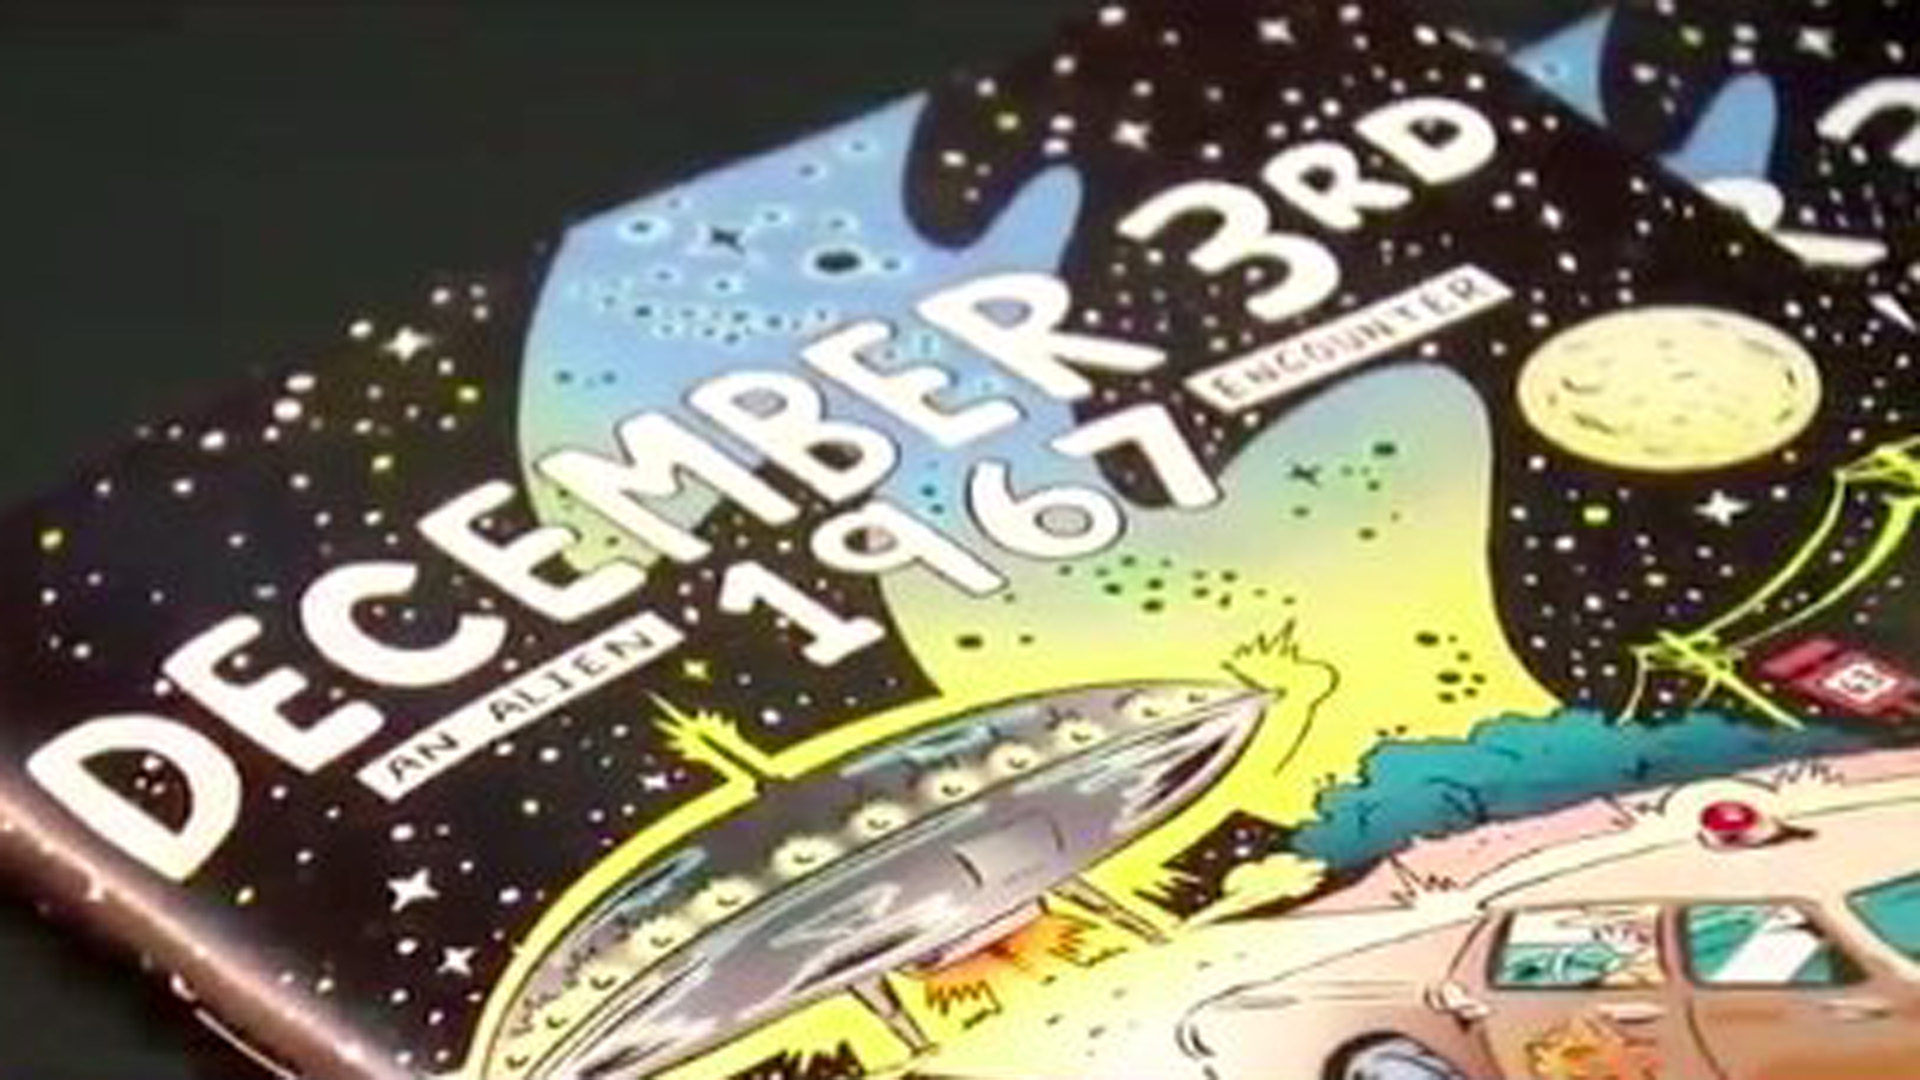 Michael Jasorka's comic book was inspired by a story of an alien encounter in Nebraska in the 1960s. (Credit: CNN)